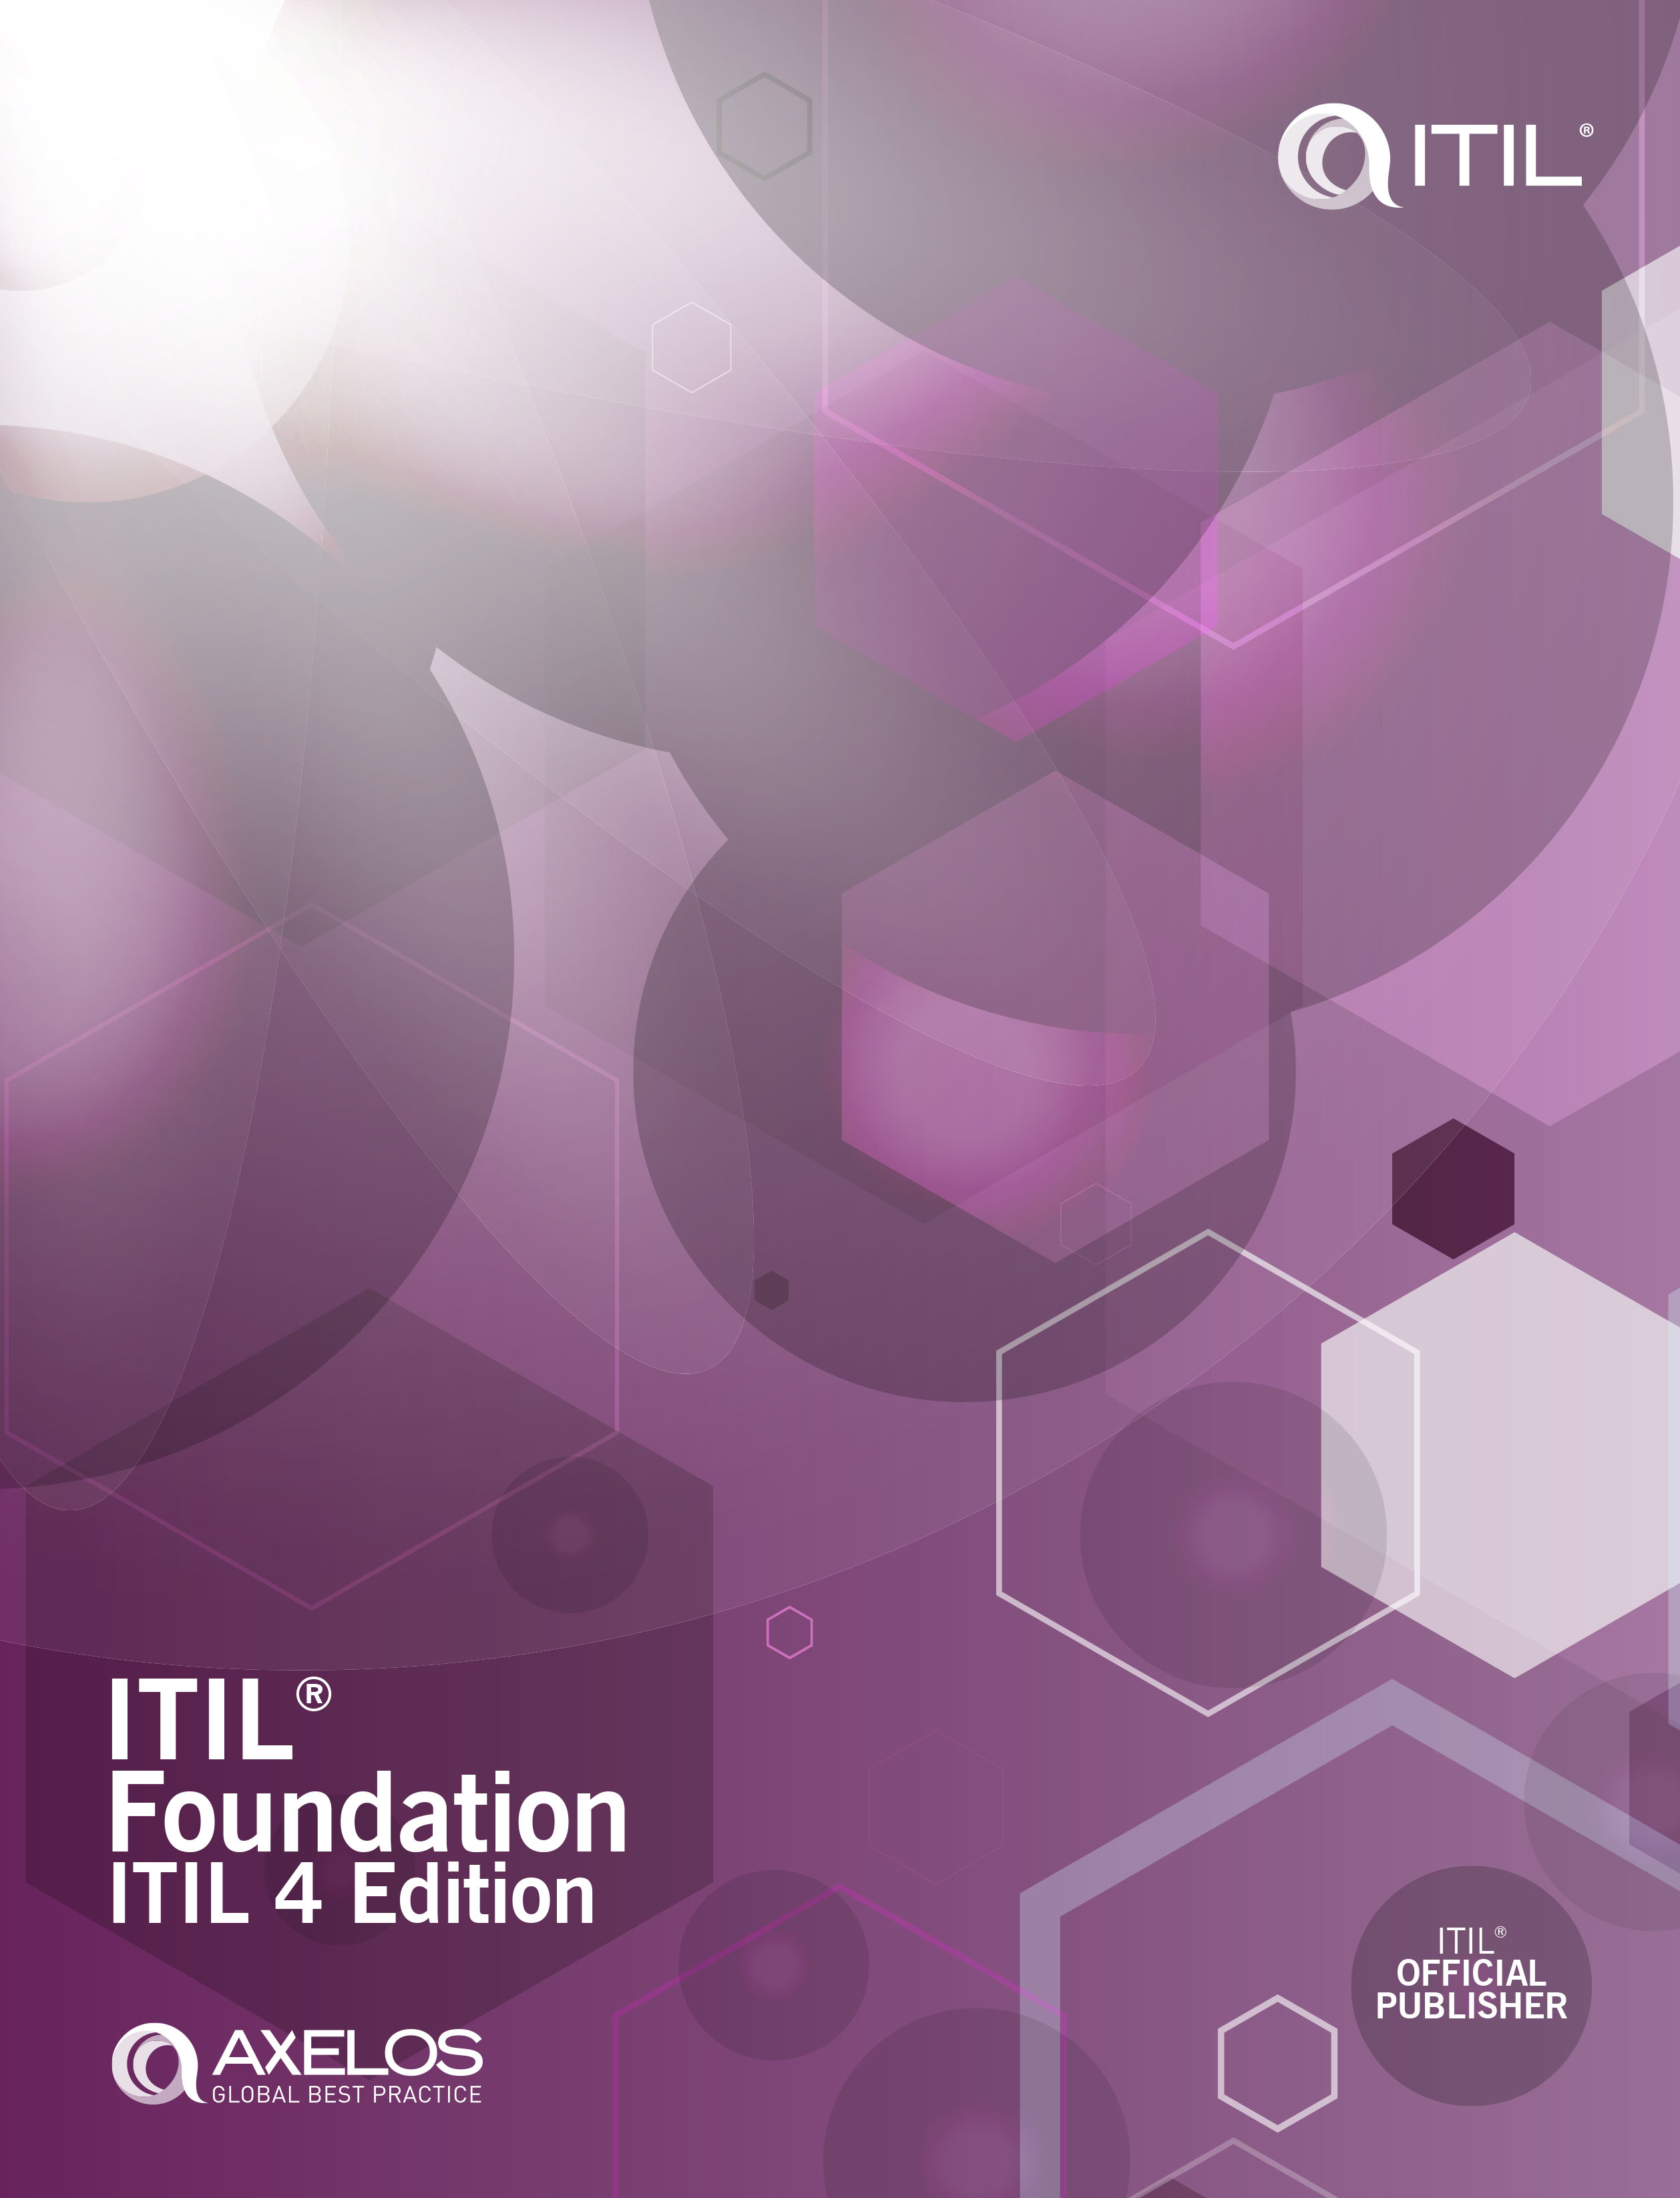 Download Ebook ITIL Foundation: ITIL 4 Edition by AXELOS Limited Pdf